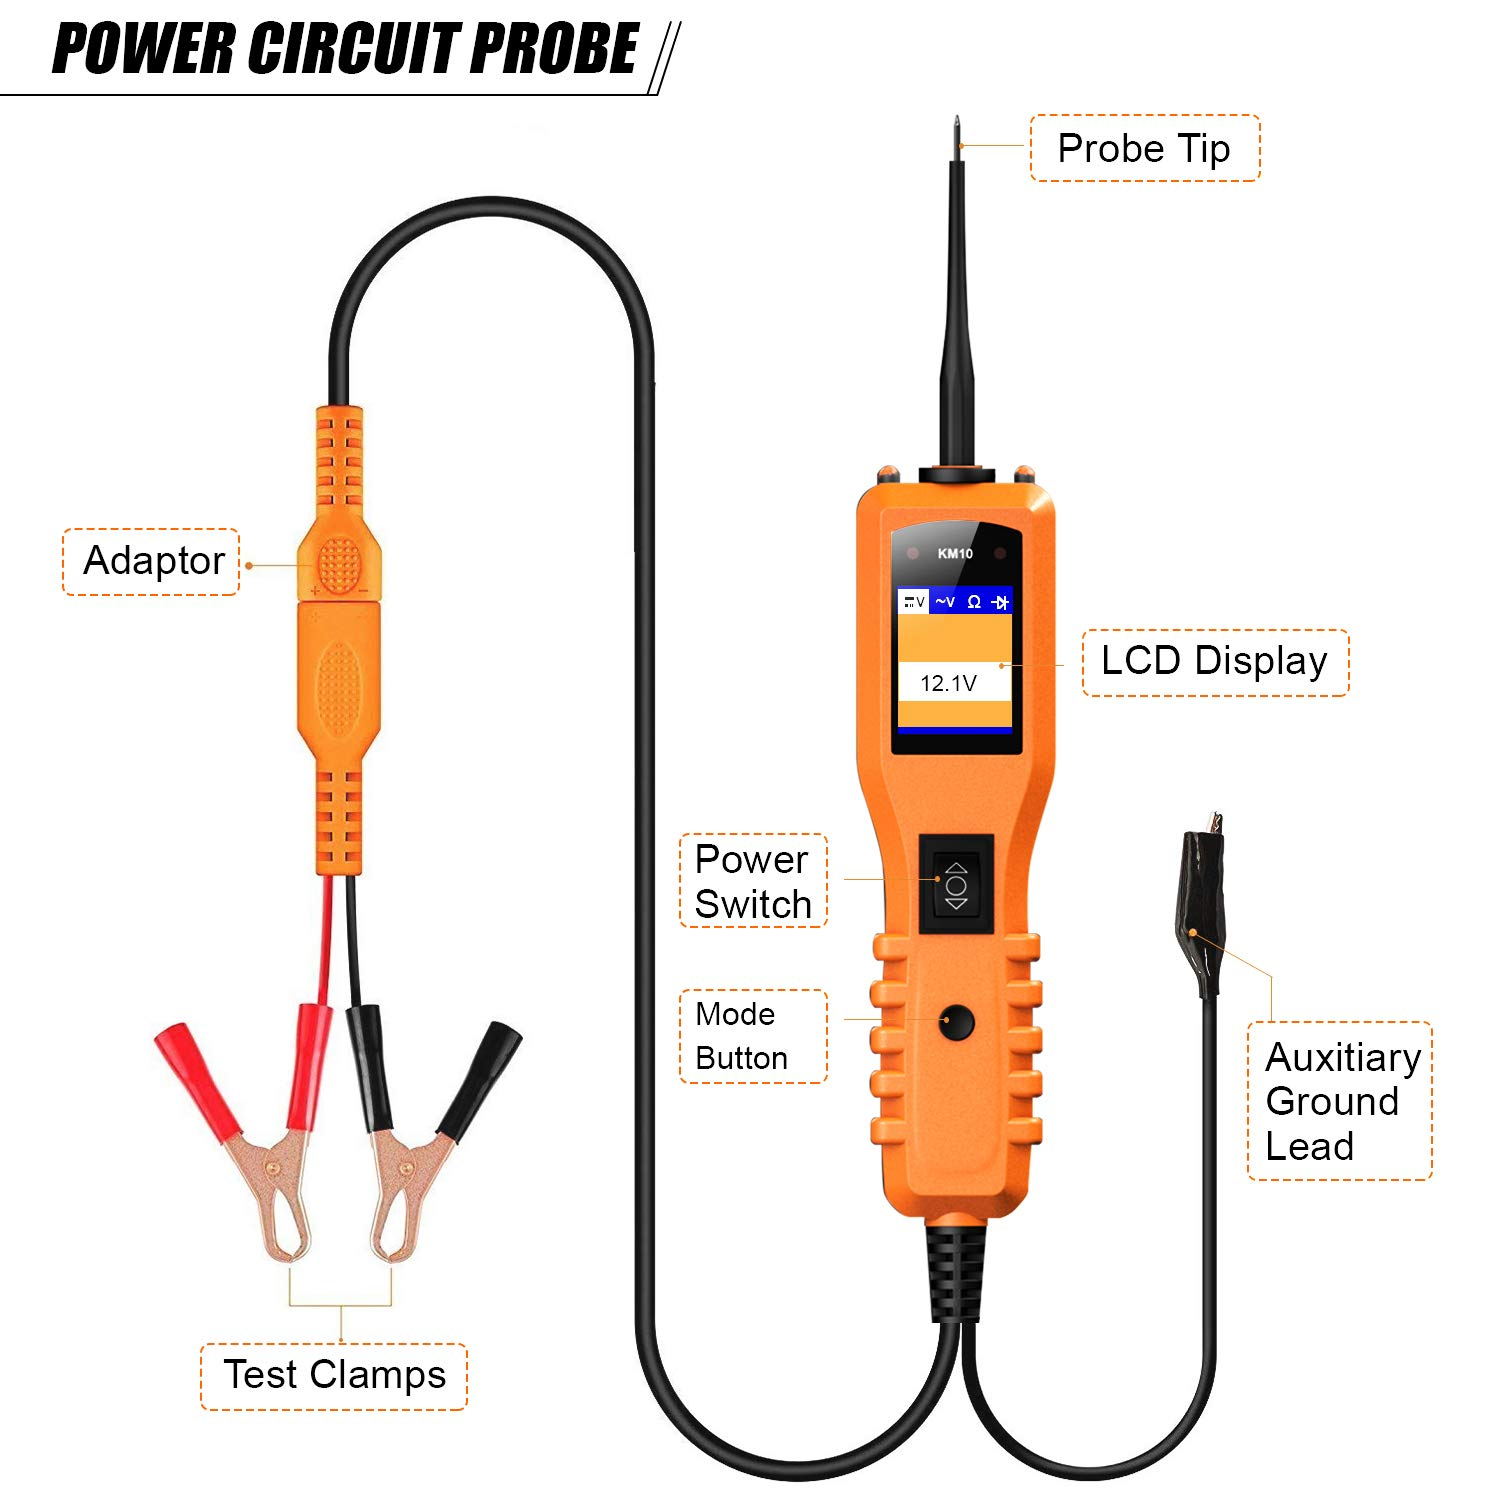 KM10 Automotive Circuit Tester Power Probe Kit Diagnostic Test Tool Vehicle Voltage Signal Diagnostic/Components Activated/Continuity Short Testing for 12-24V Auto Electrical System by Quicklynks (Image #4)